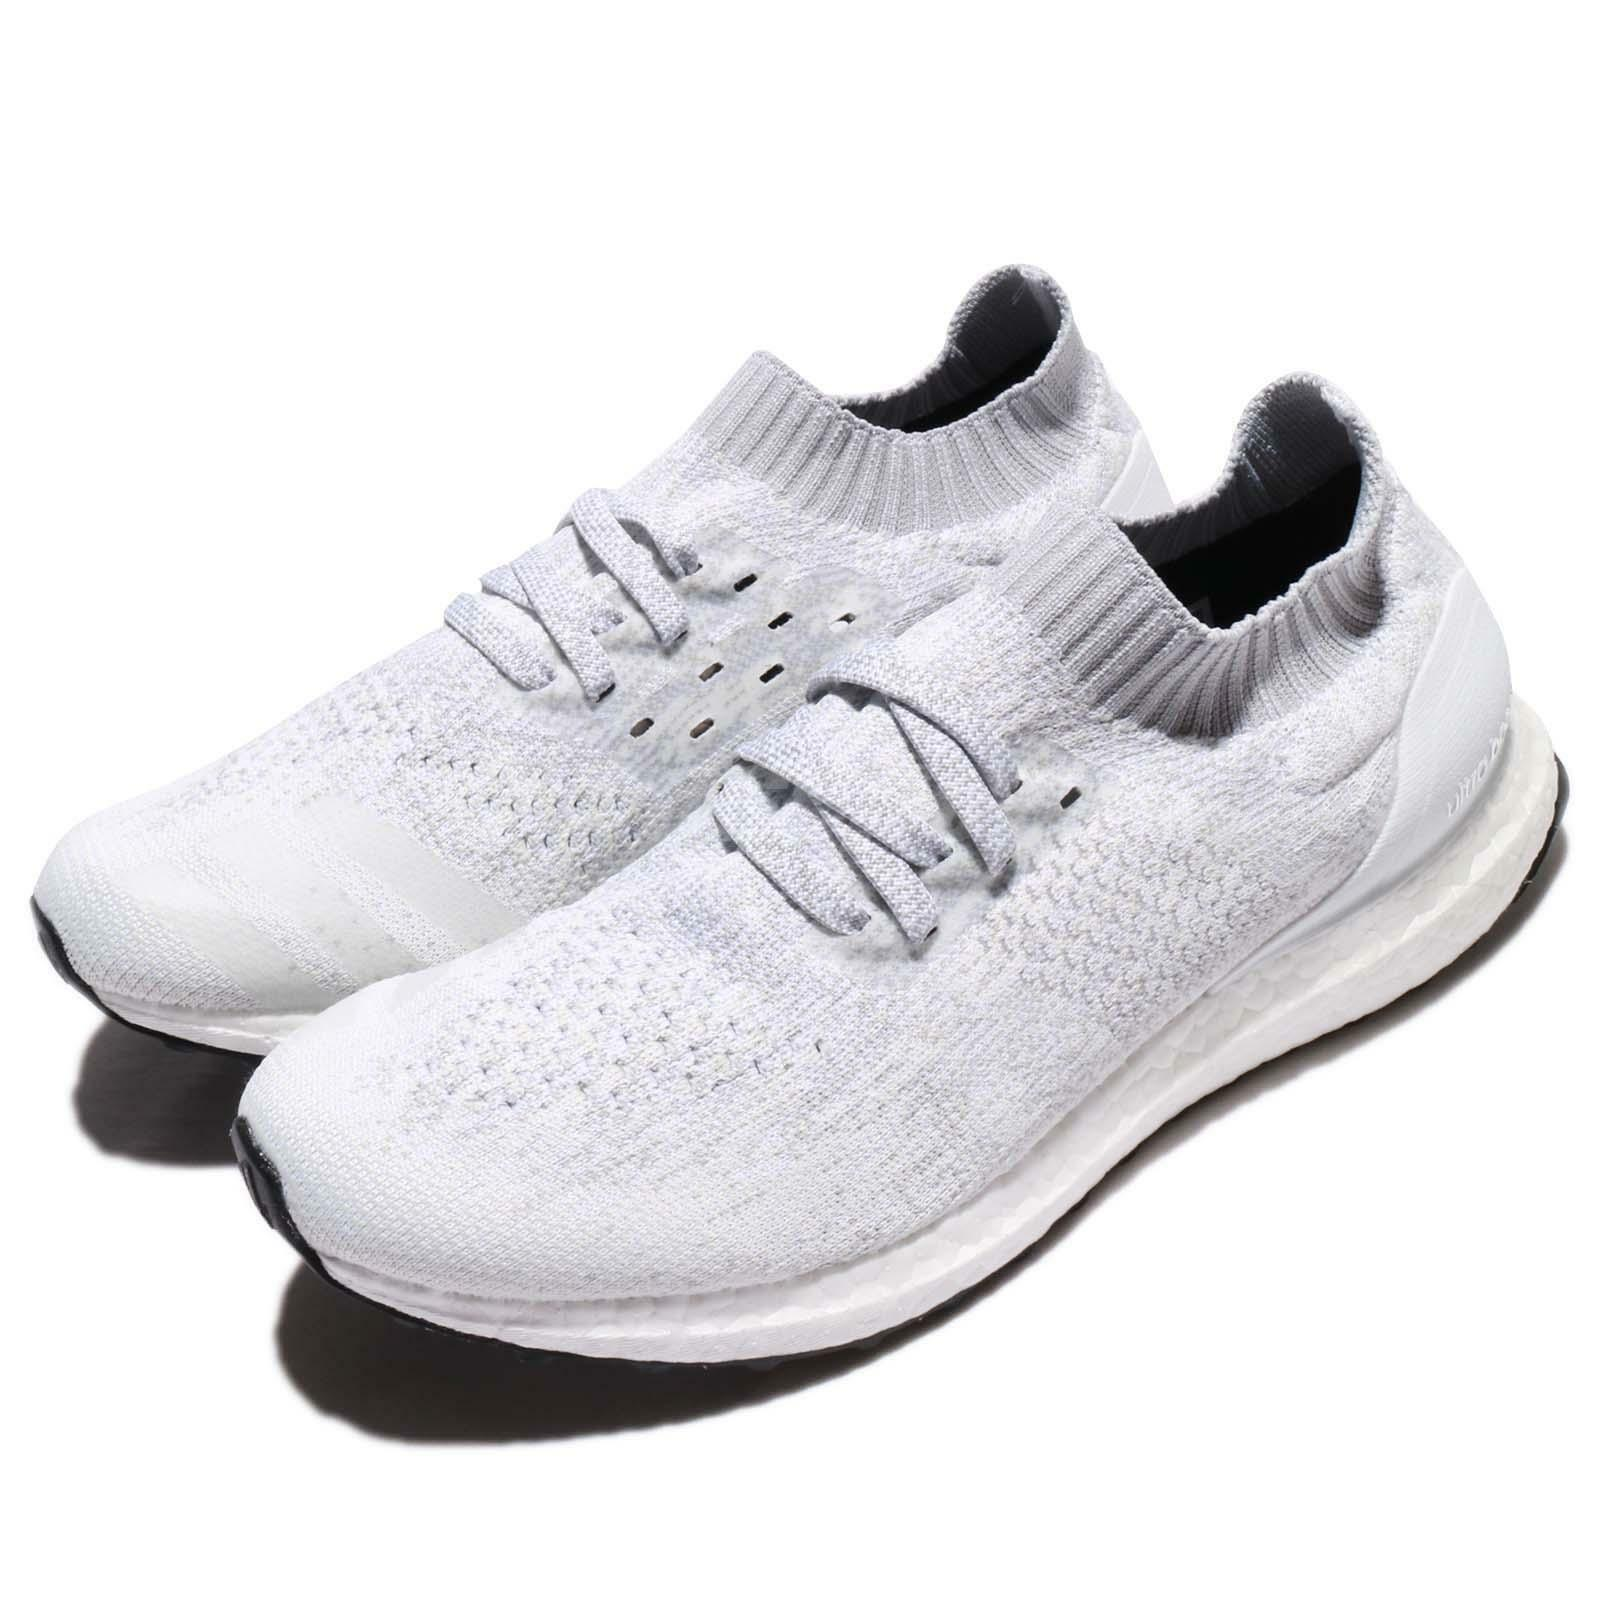 adidas UltraBOOST Uncaged blanc  Tint Hommes Running Chaussures Sneakers Trainers DA9157